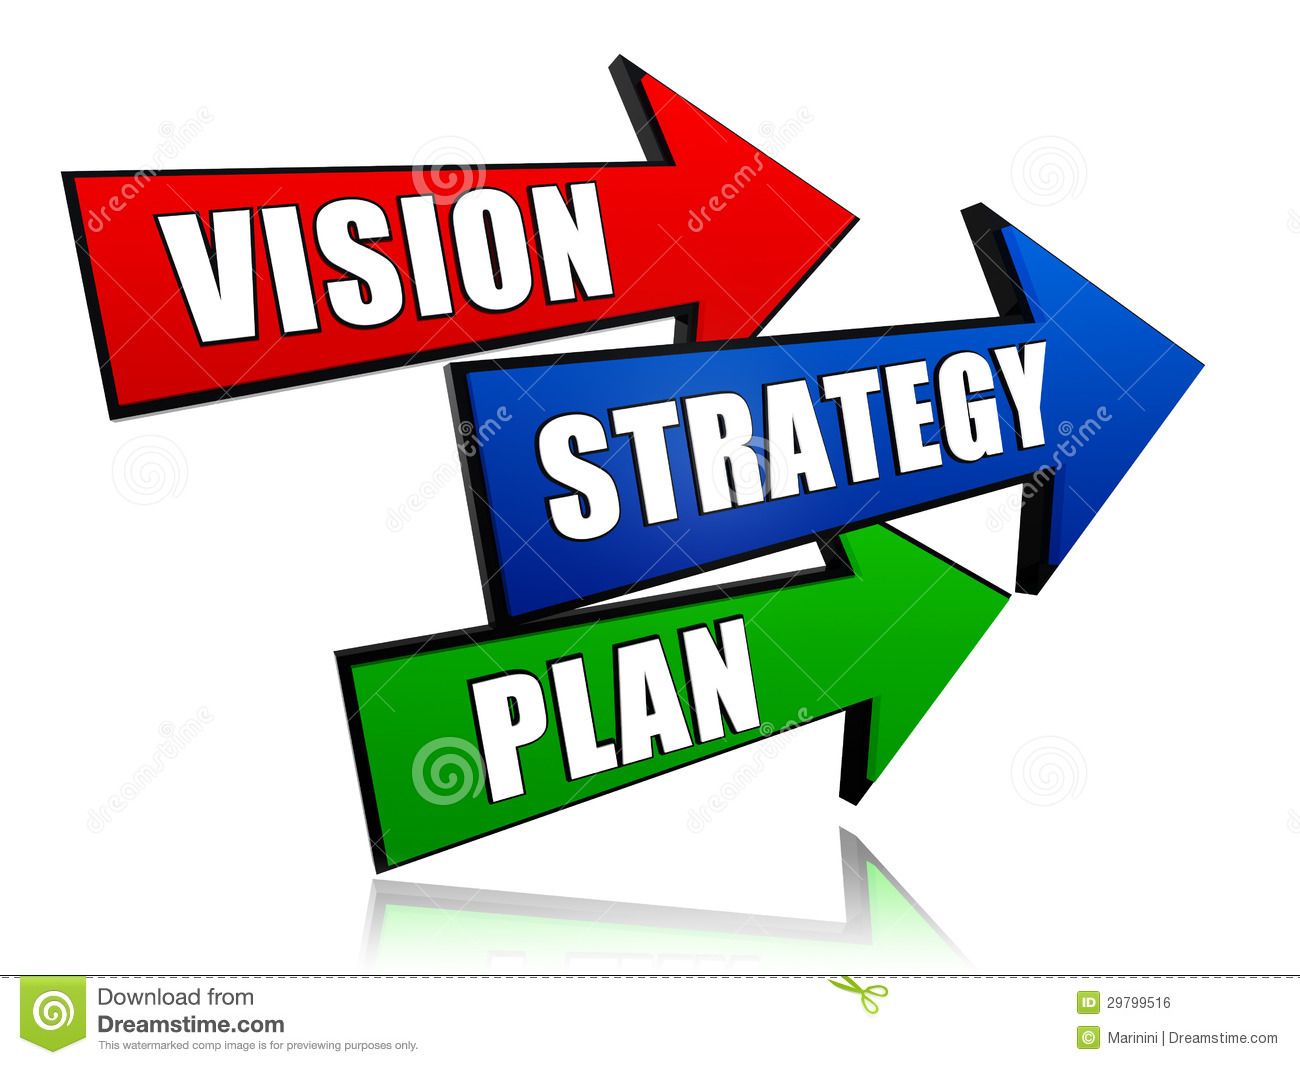 strategi planning Definition of strategic planning: a systematic process of envisioning a desired future, and translating this vision into broadly defined goals or objectives and a.